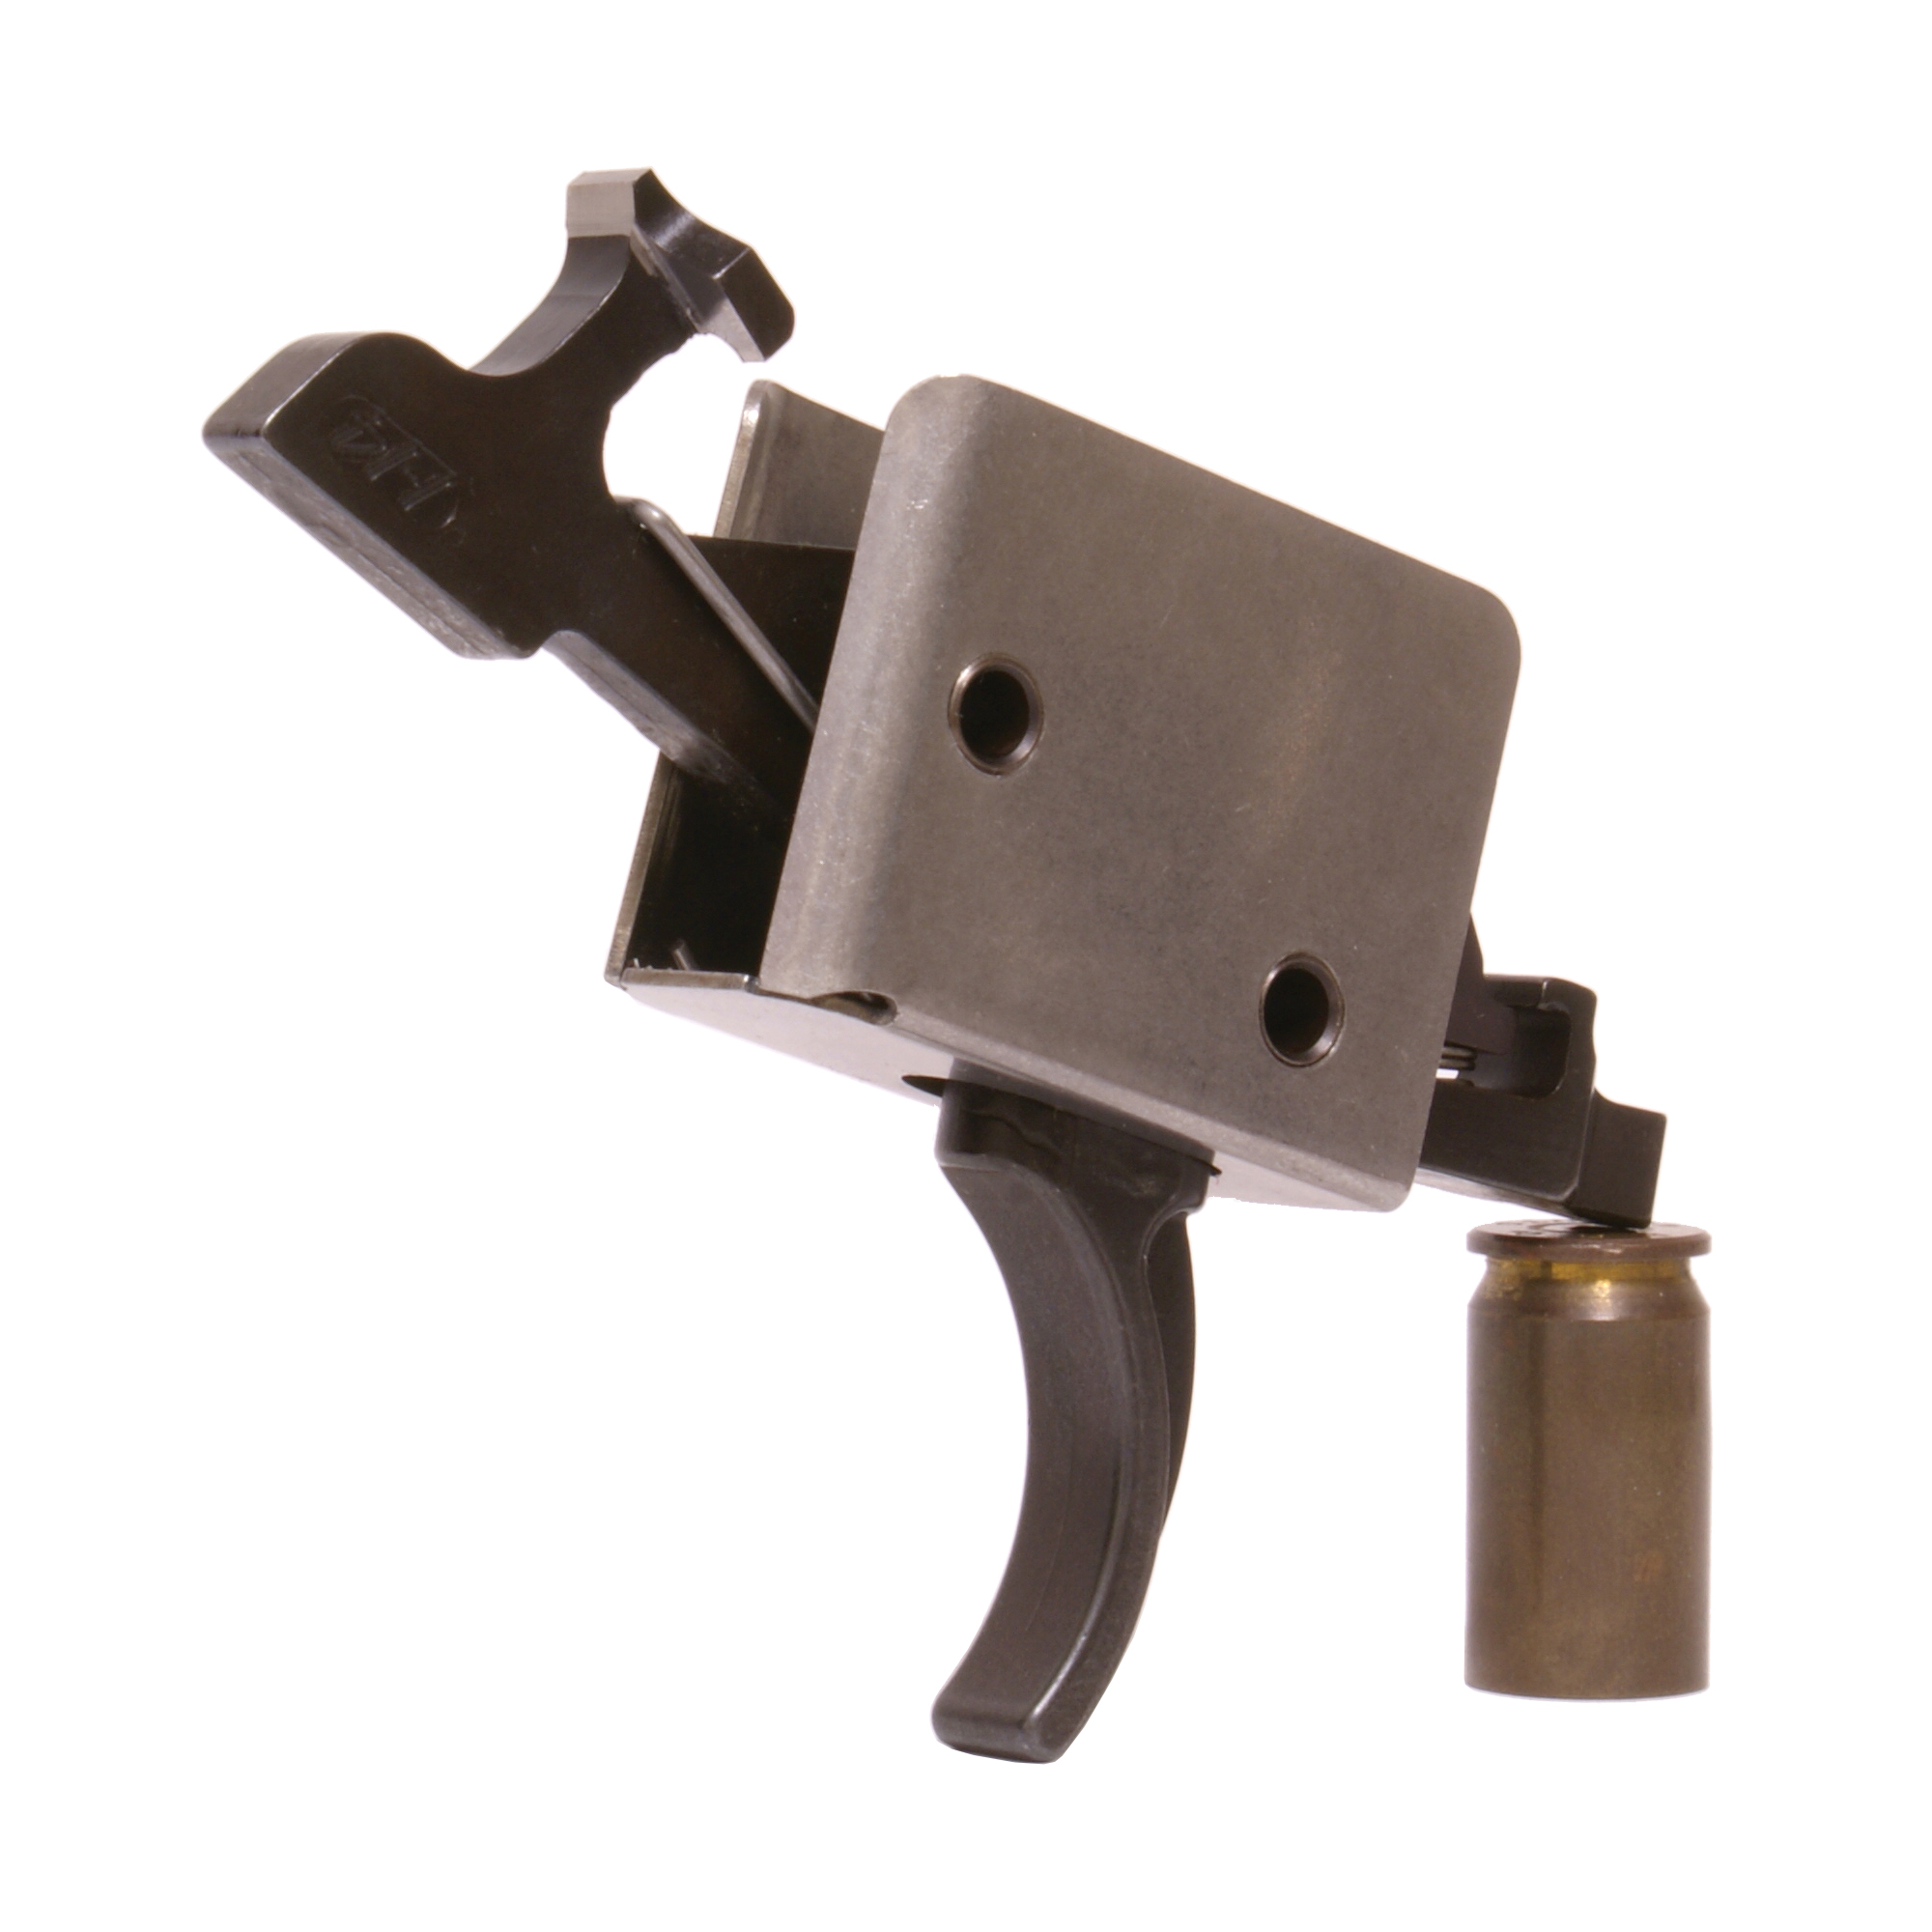 """CMC's innovative"""" self-contained and easy-to-install AR-15 trigger groups have been completely re-tooled to maximize production capacities"""" incorporate new design enhancements and reduce cost. CMC's AR-15 trigger groups have always yielded exceptional trigger pull dynamics for thousands of satisfied customers."""